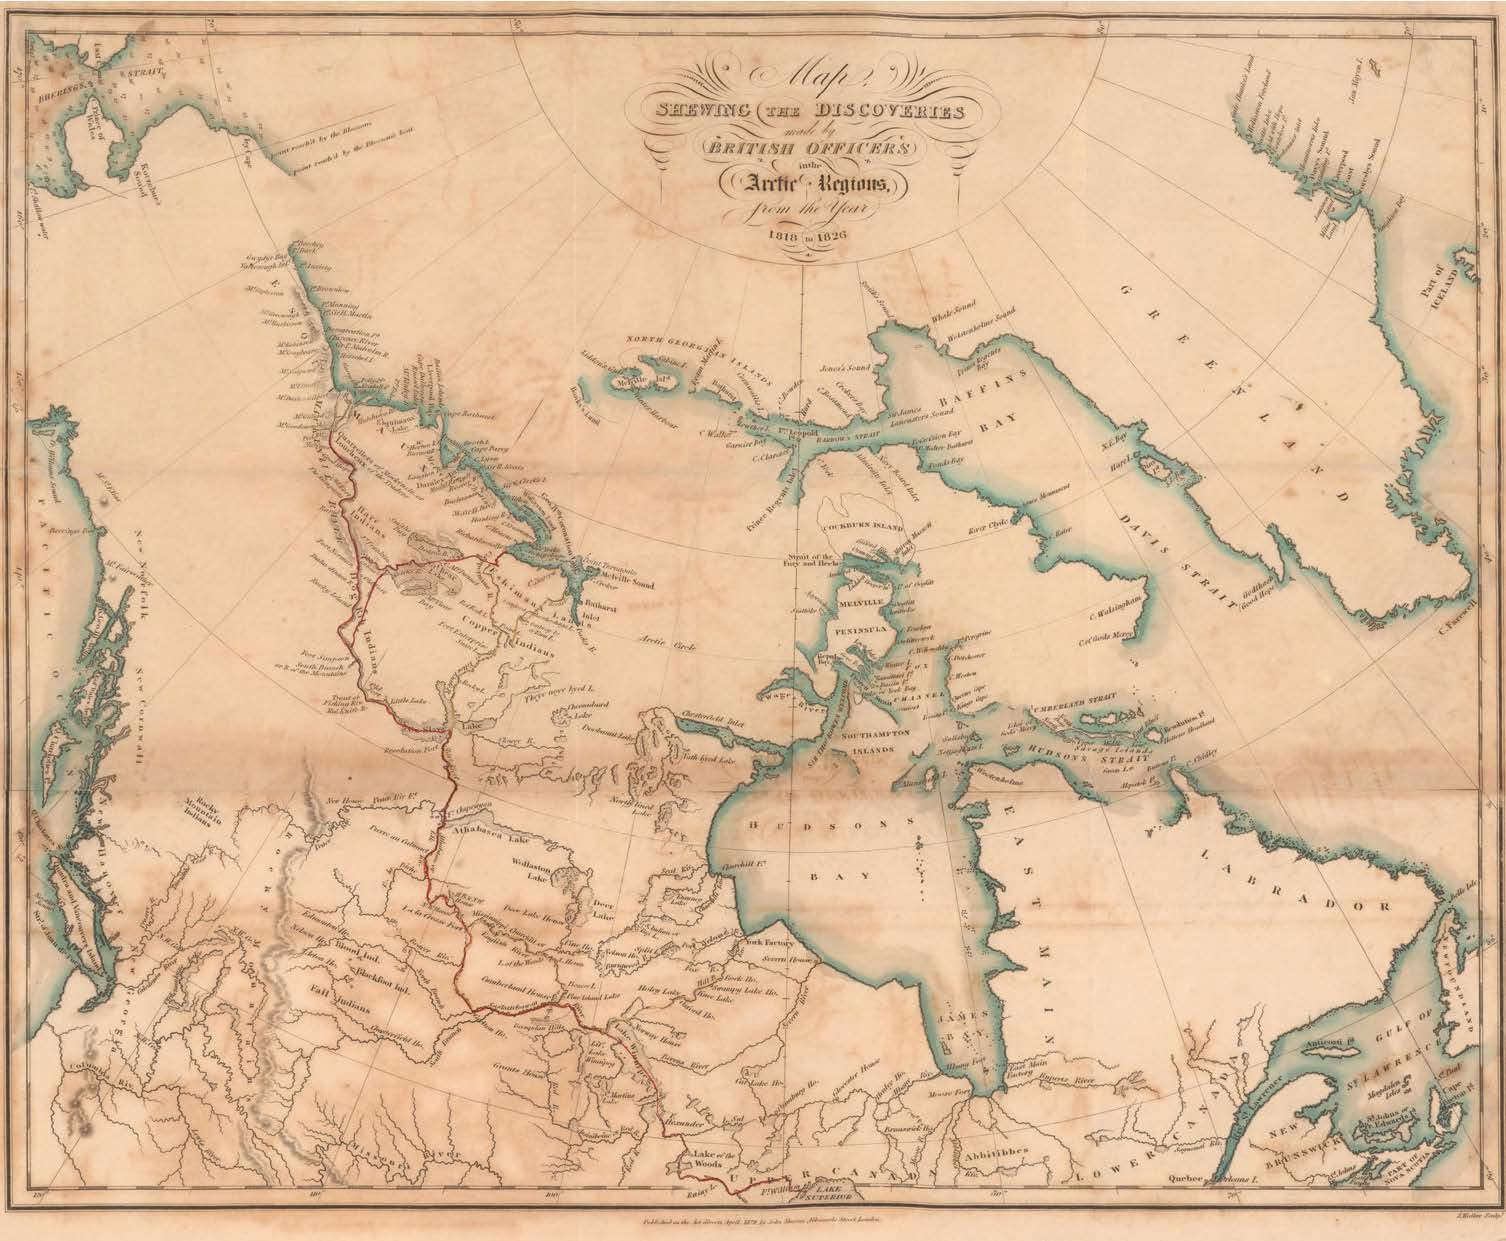 10 maps that made Canada | Canadian Geographic Interactive Map Of Explorers North America on old maps of north america, interactive us map, large map of latin america, interactive trip planner usa map, churches of north america, airports of north america, biomes of north america, edible wild plants of north america, birds of prey of north america, flying birds of north america, interactive map japan, overview of north america, property of north america, world map north america, interactive map of north carolina, interactive world map with countries, native american cultures in north america, architecture of north america, simple map of america, interactive map south america,